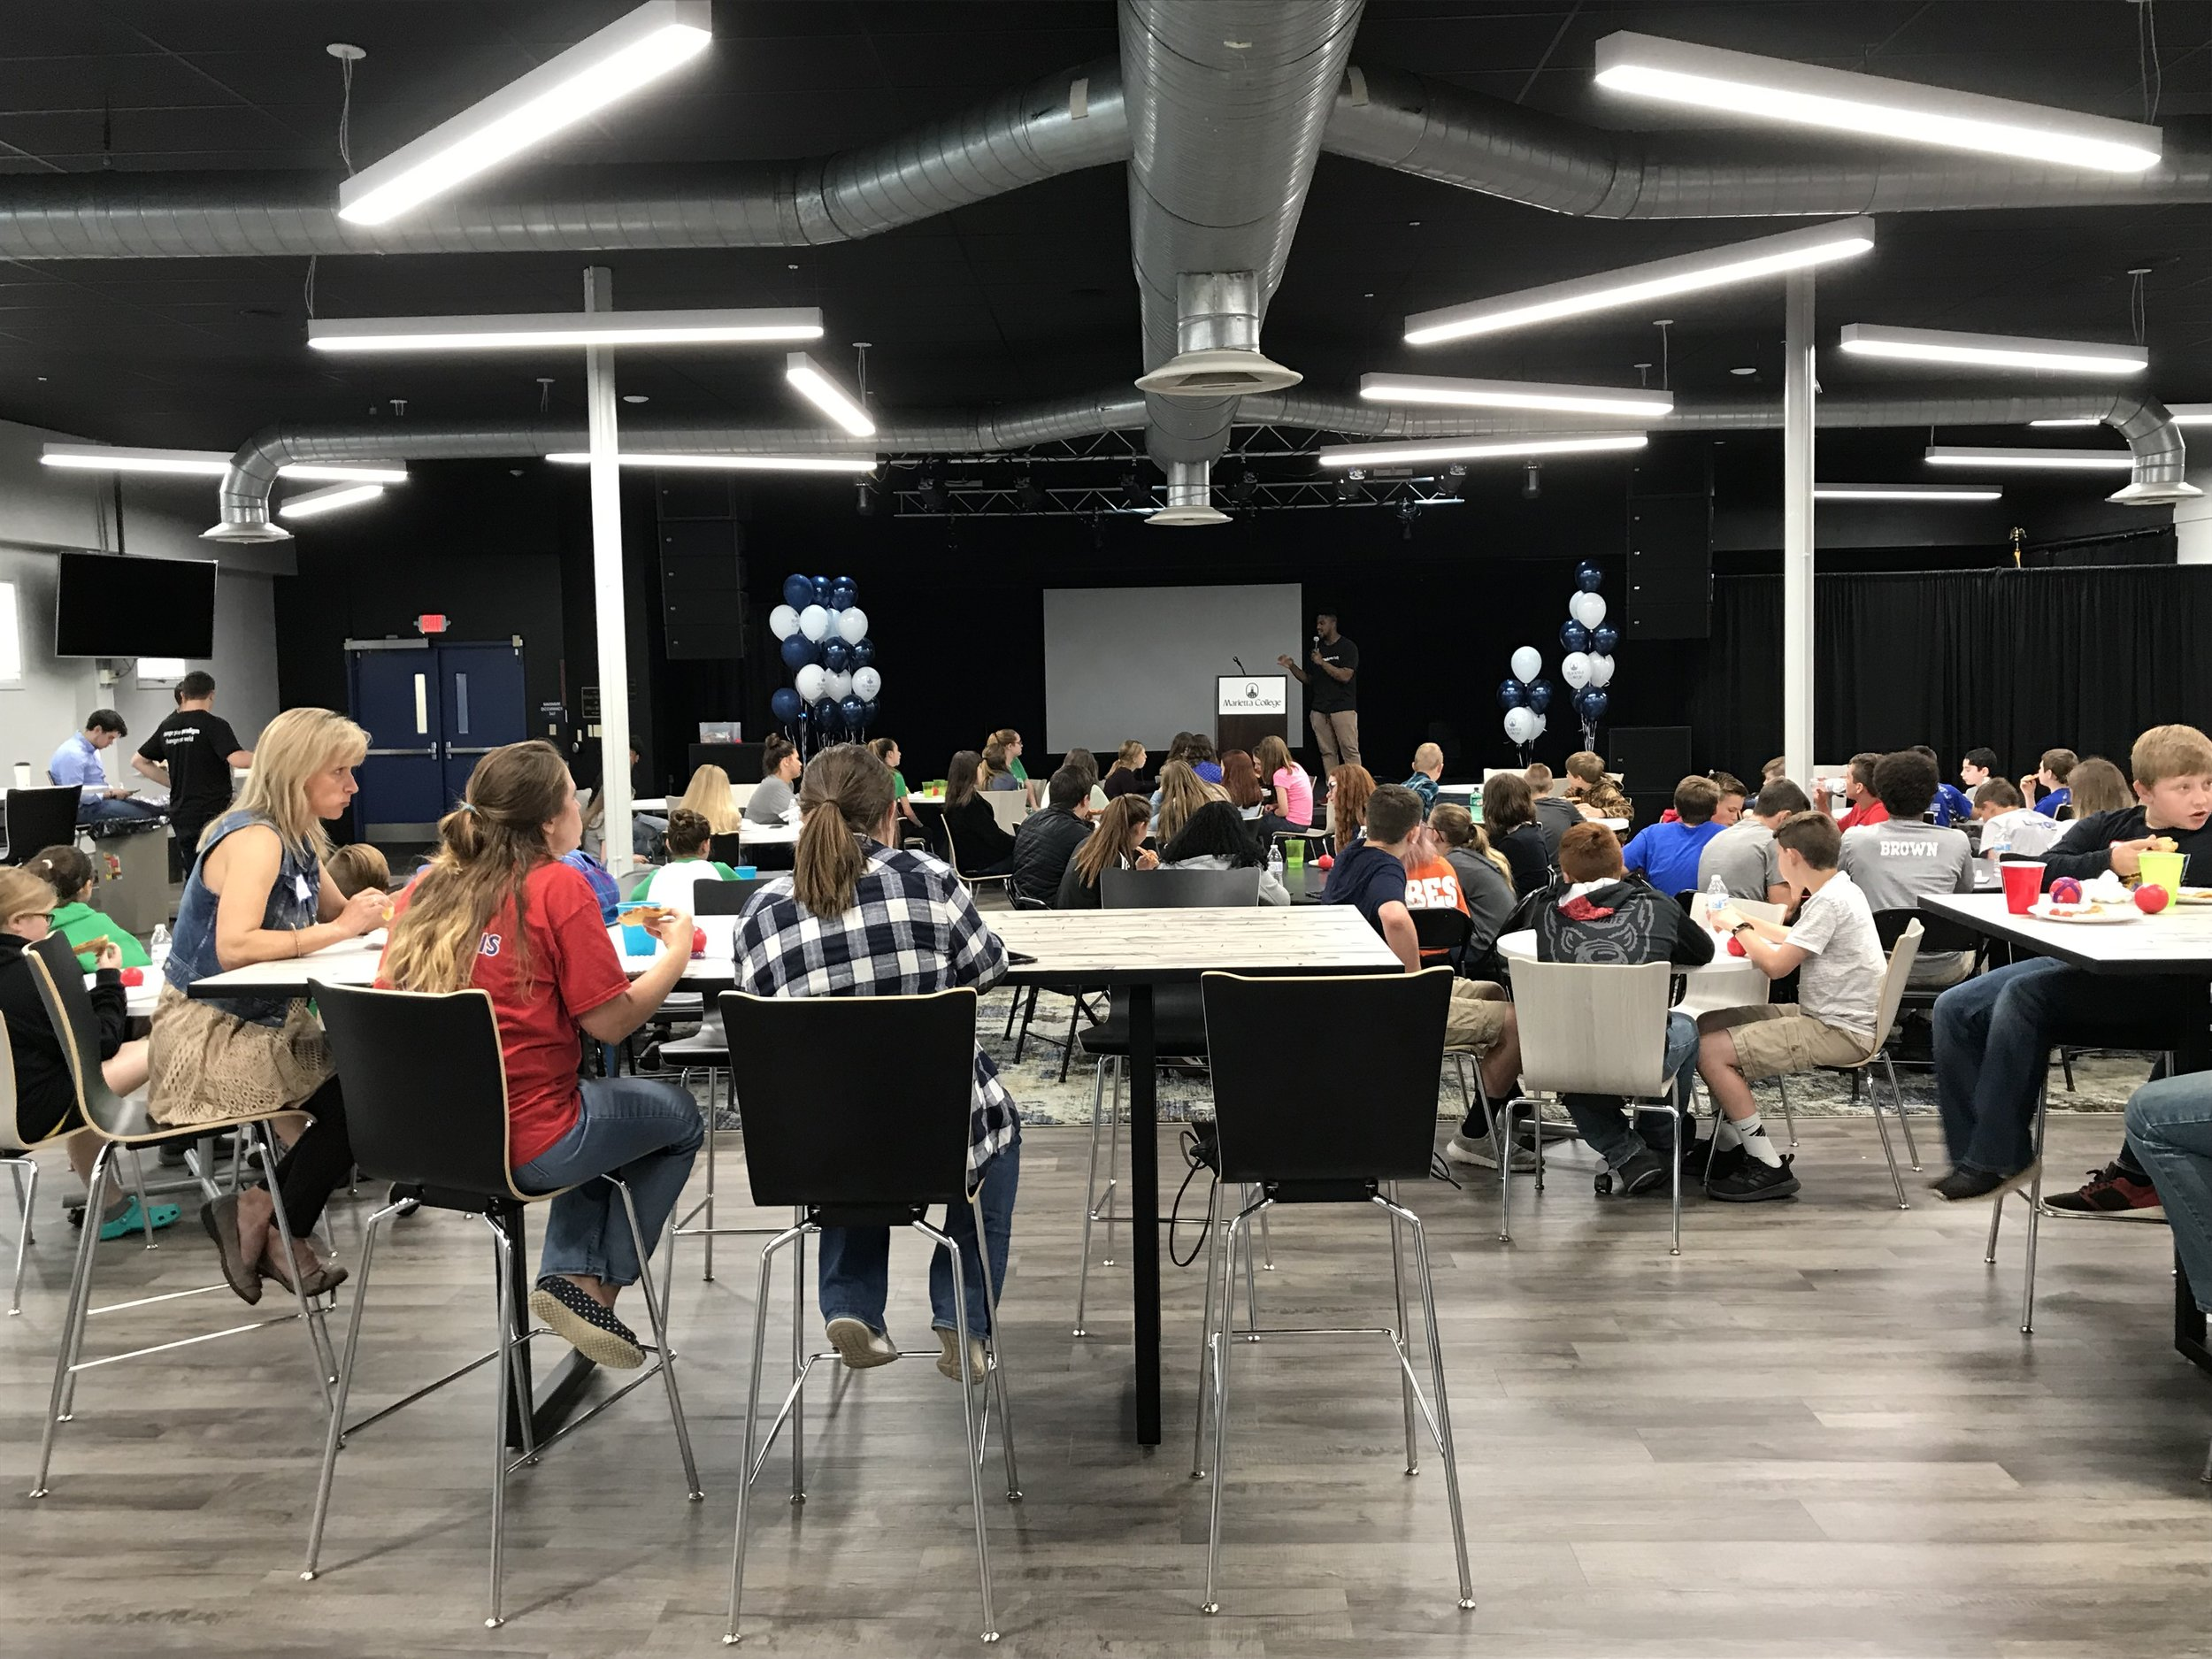 Over 100 students enjoy a presentation during their lunch.